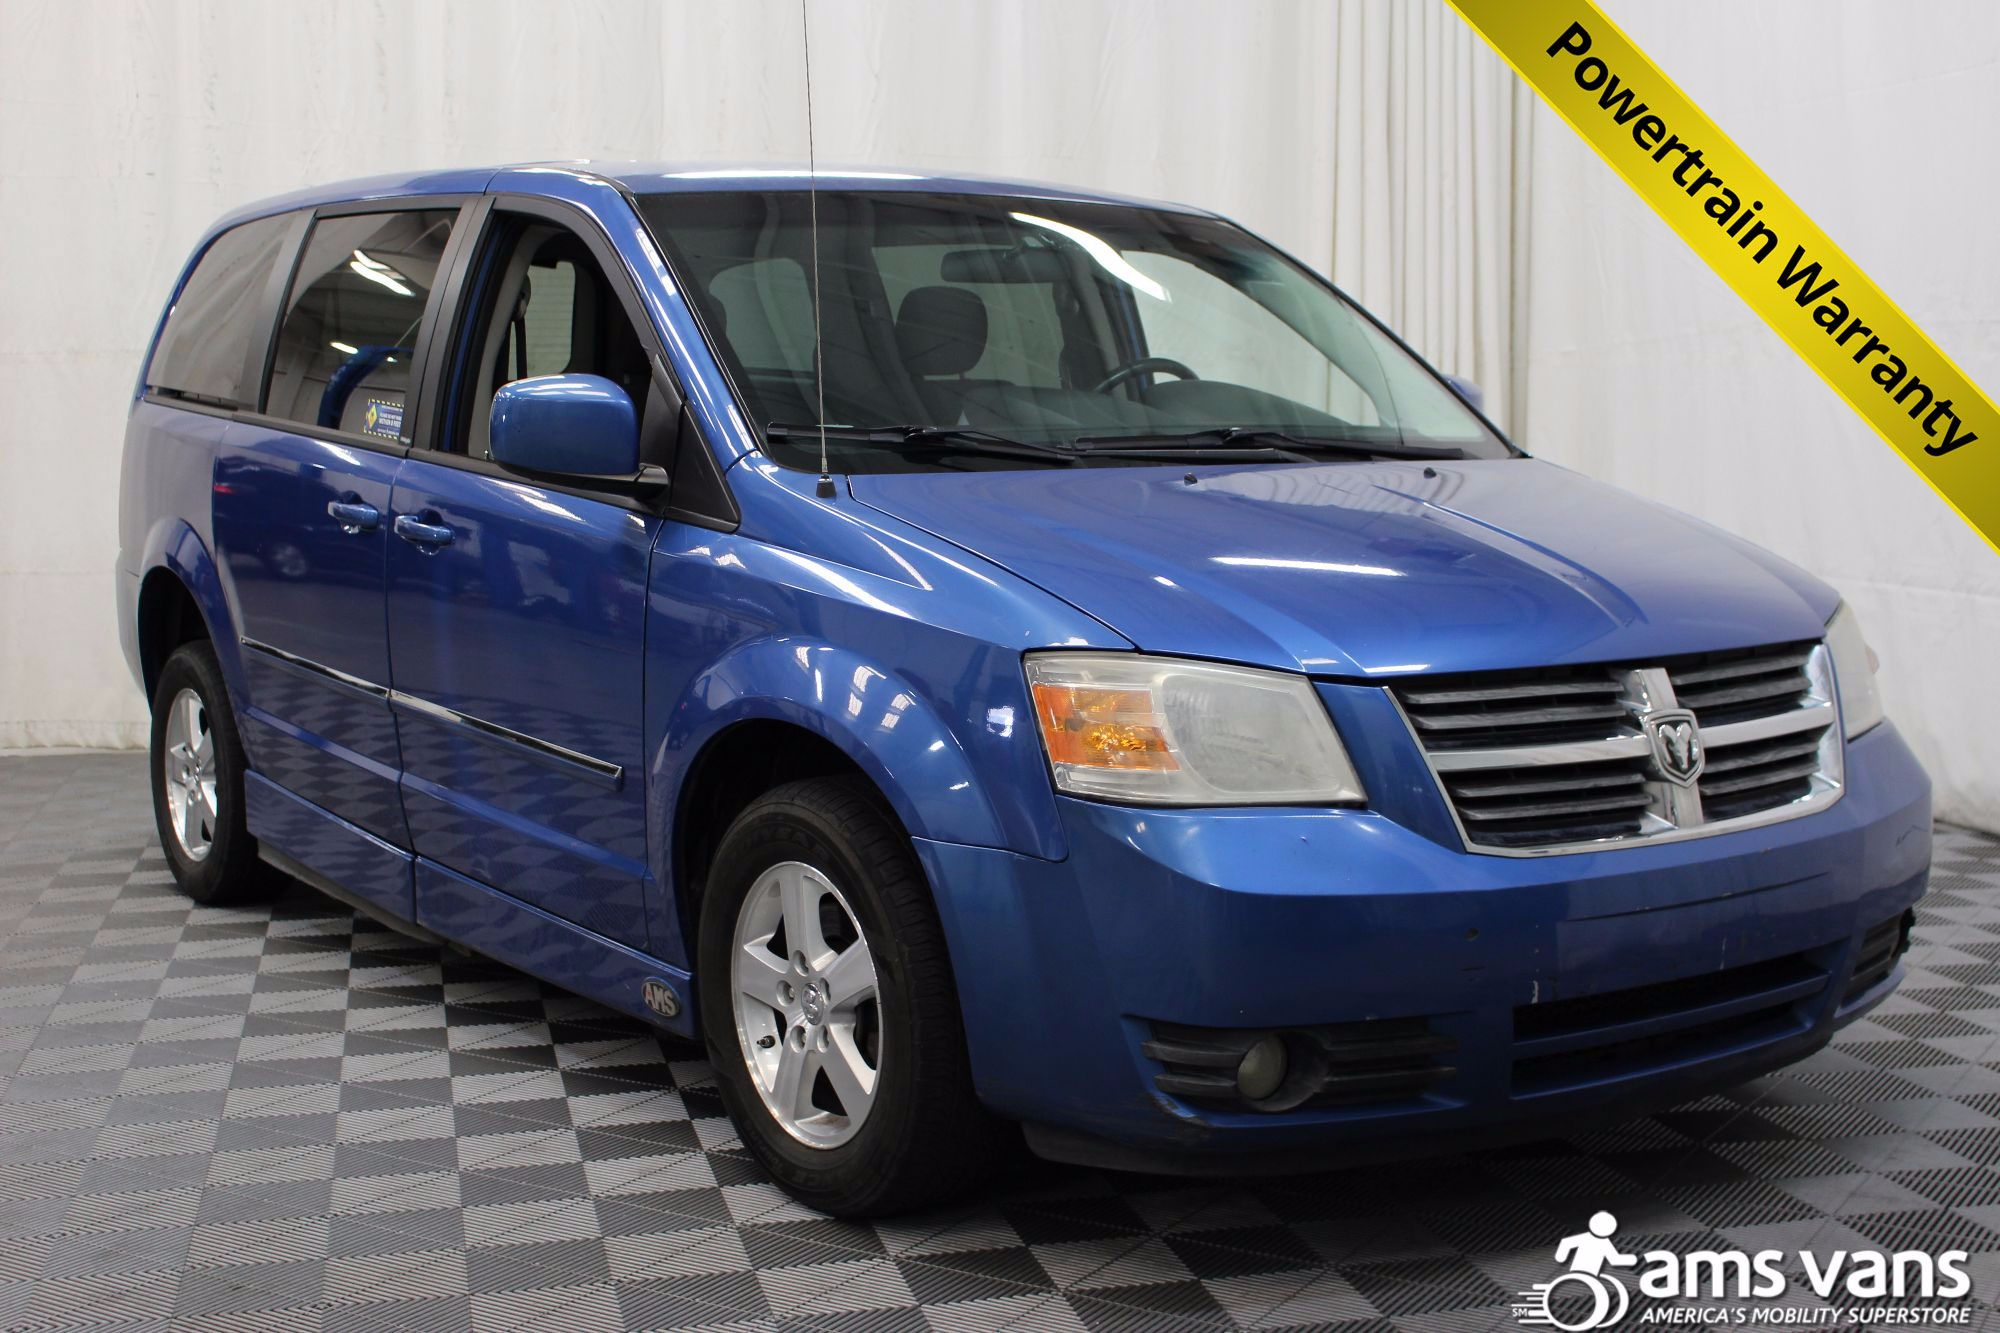 2008 Dodge Grand Caravan SXT Wheelchair Van For Sale #1